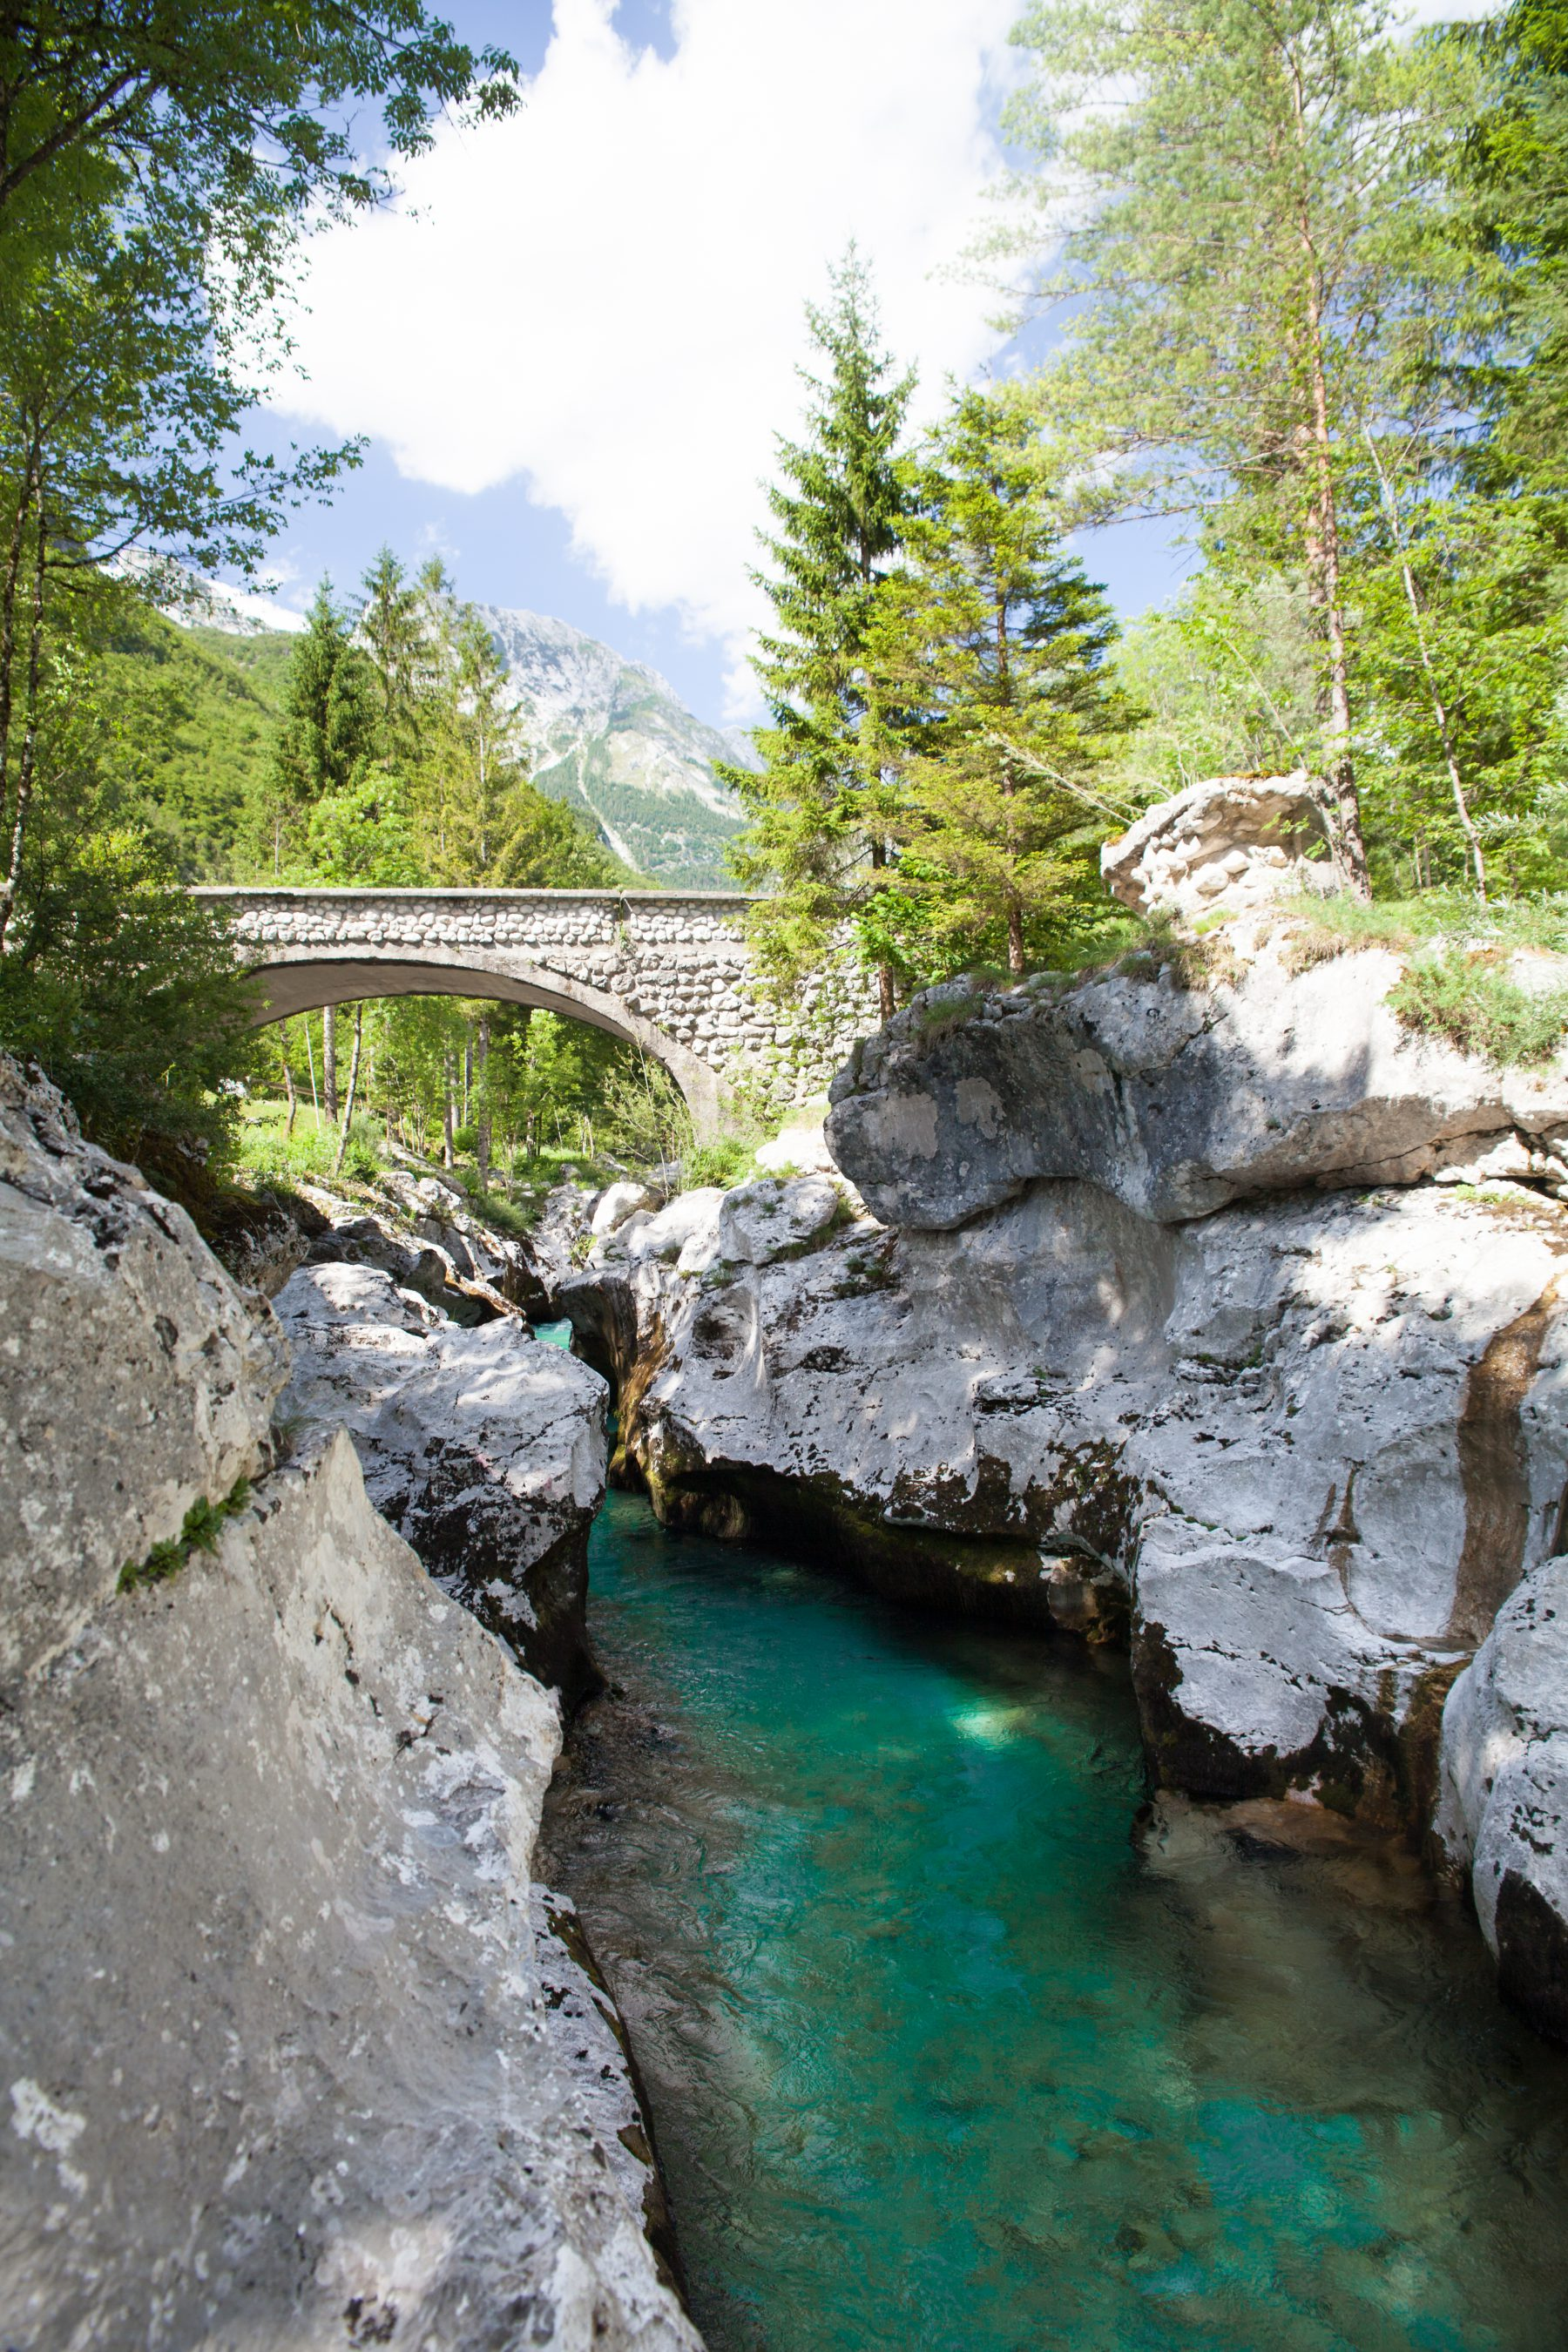 Nowhere & Everywhere Travel Environmentalism Sustainability Free Range Pixels Photography Lis Dingjan Soca River Slovenia Europe Road Trip